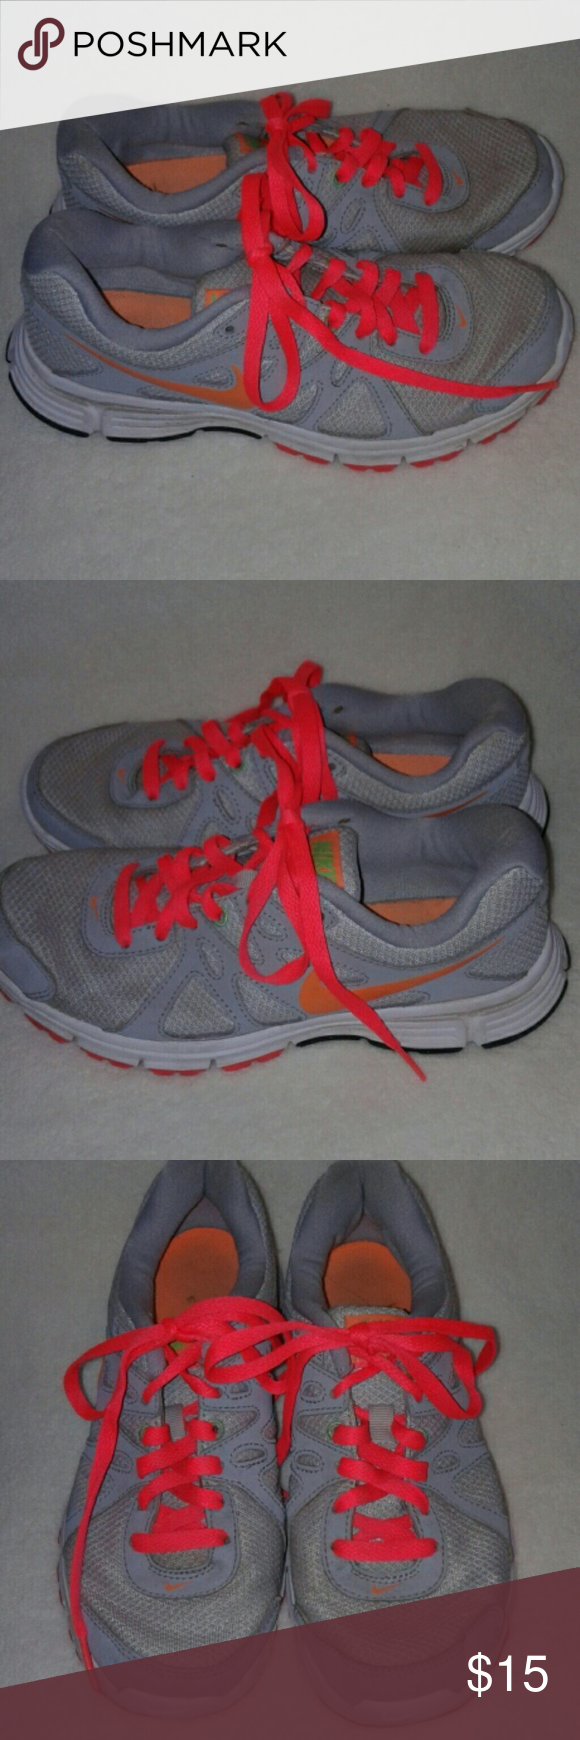 ba2b70b67674d Nike Revolution 2 Nice shoes, a few stains on shoelaces, some creasing, and